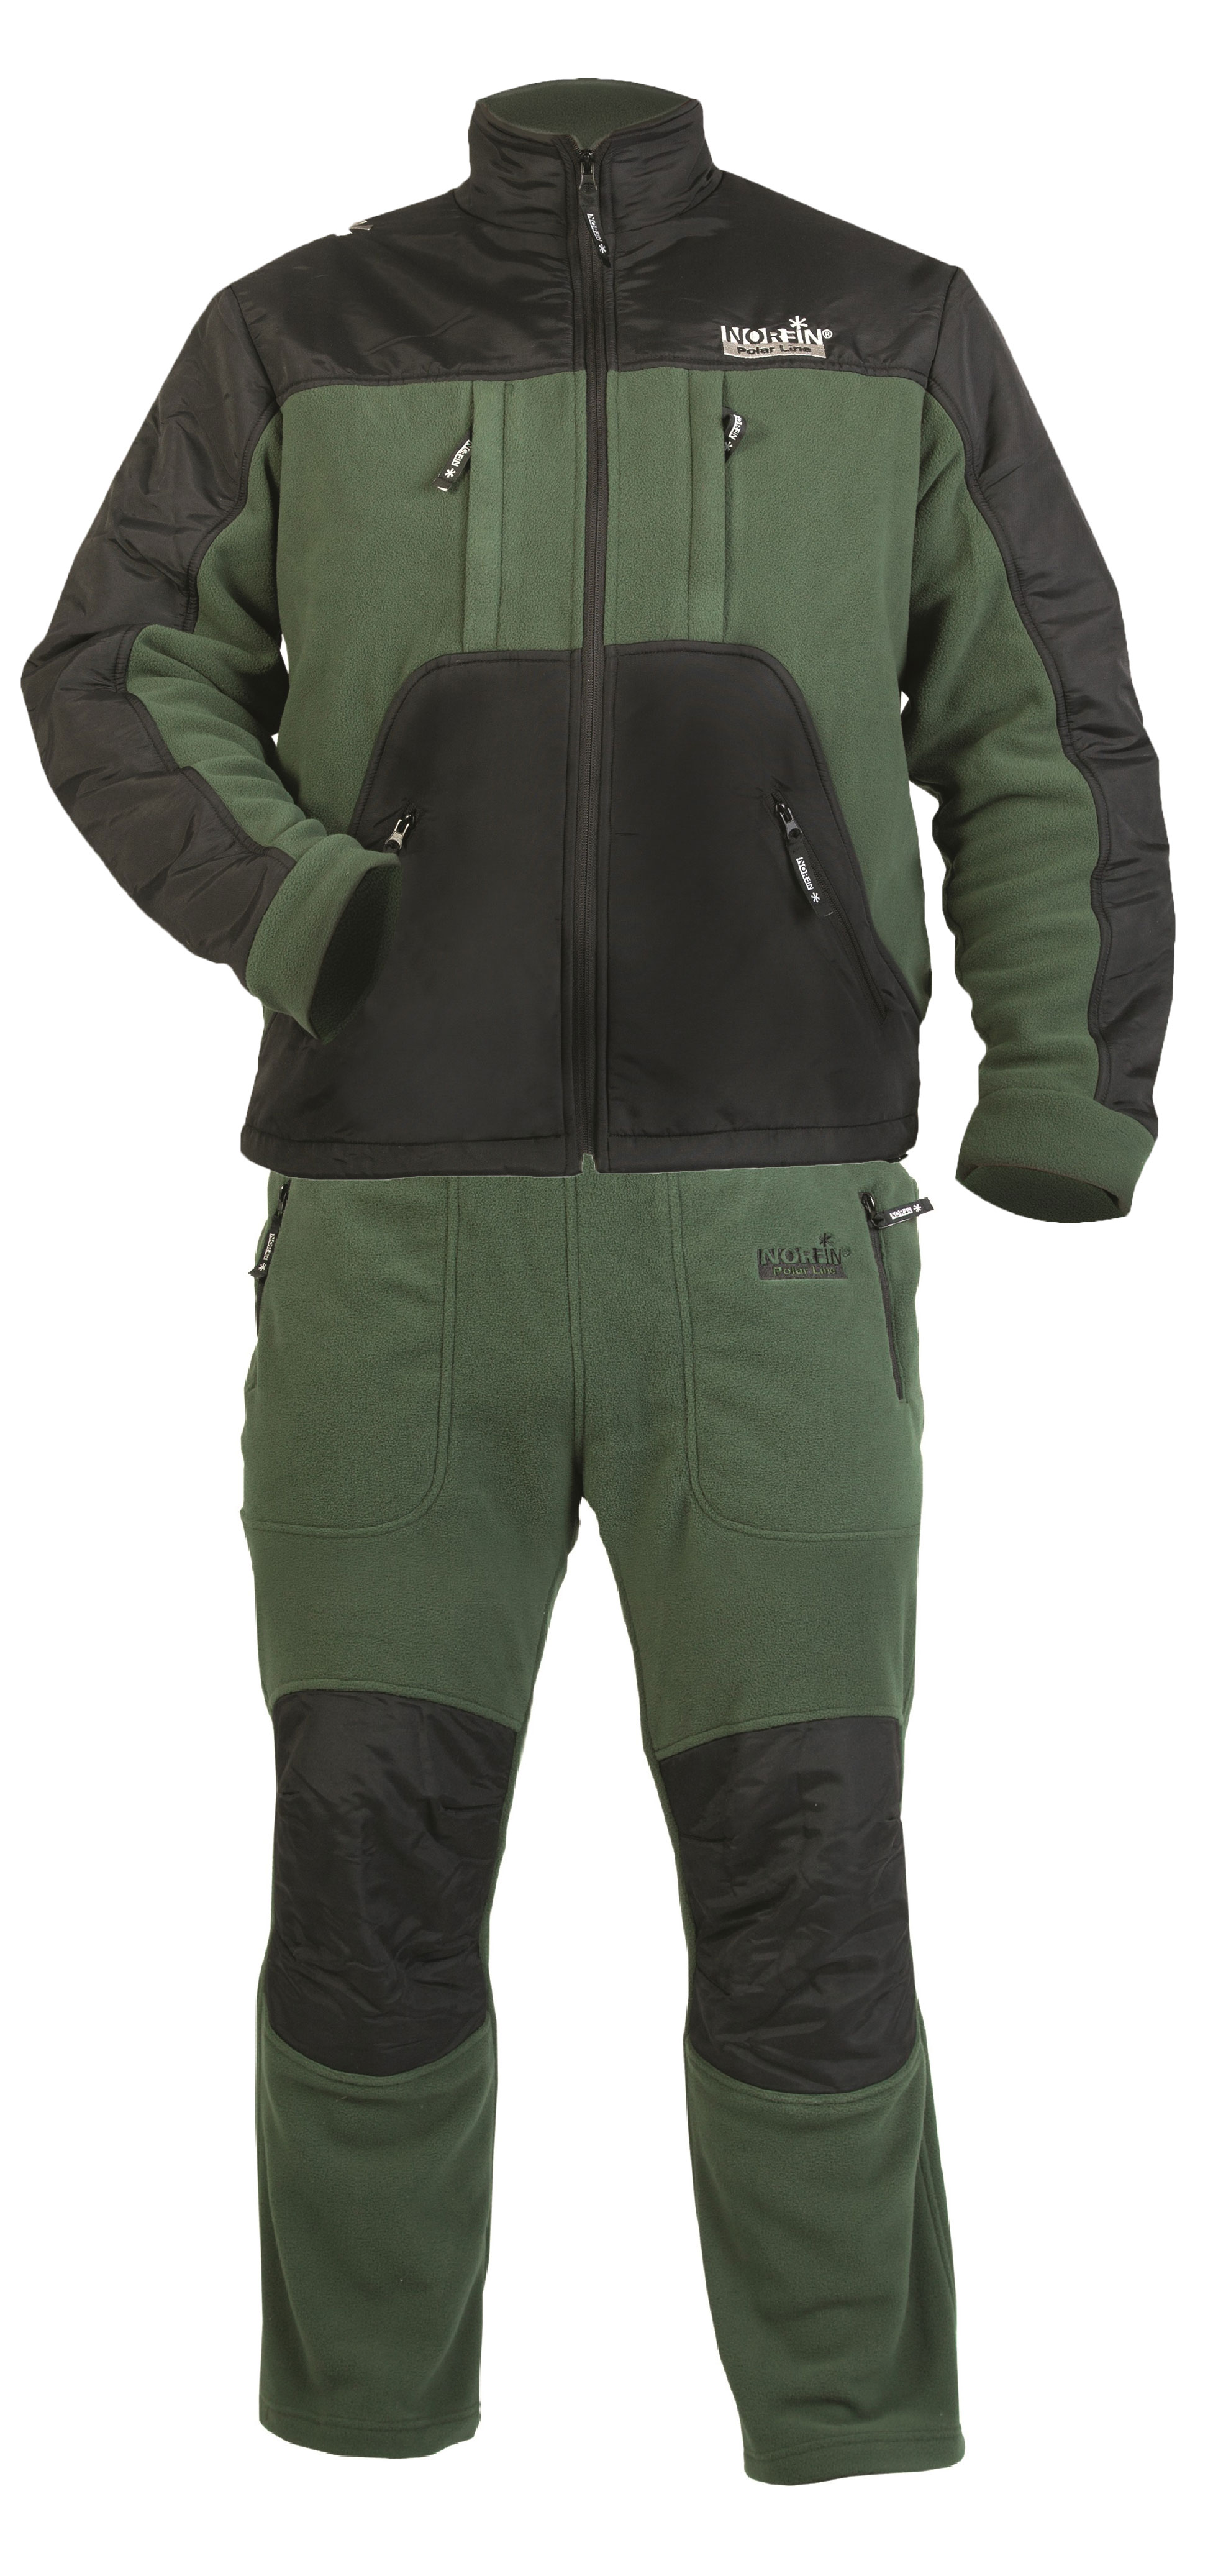 Suit Norfin - the ideal solution for winter fishing